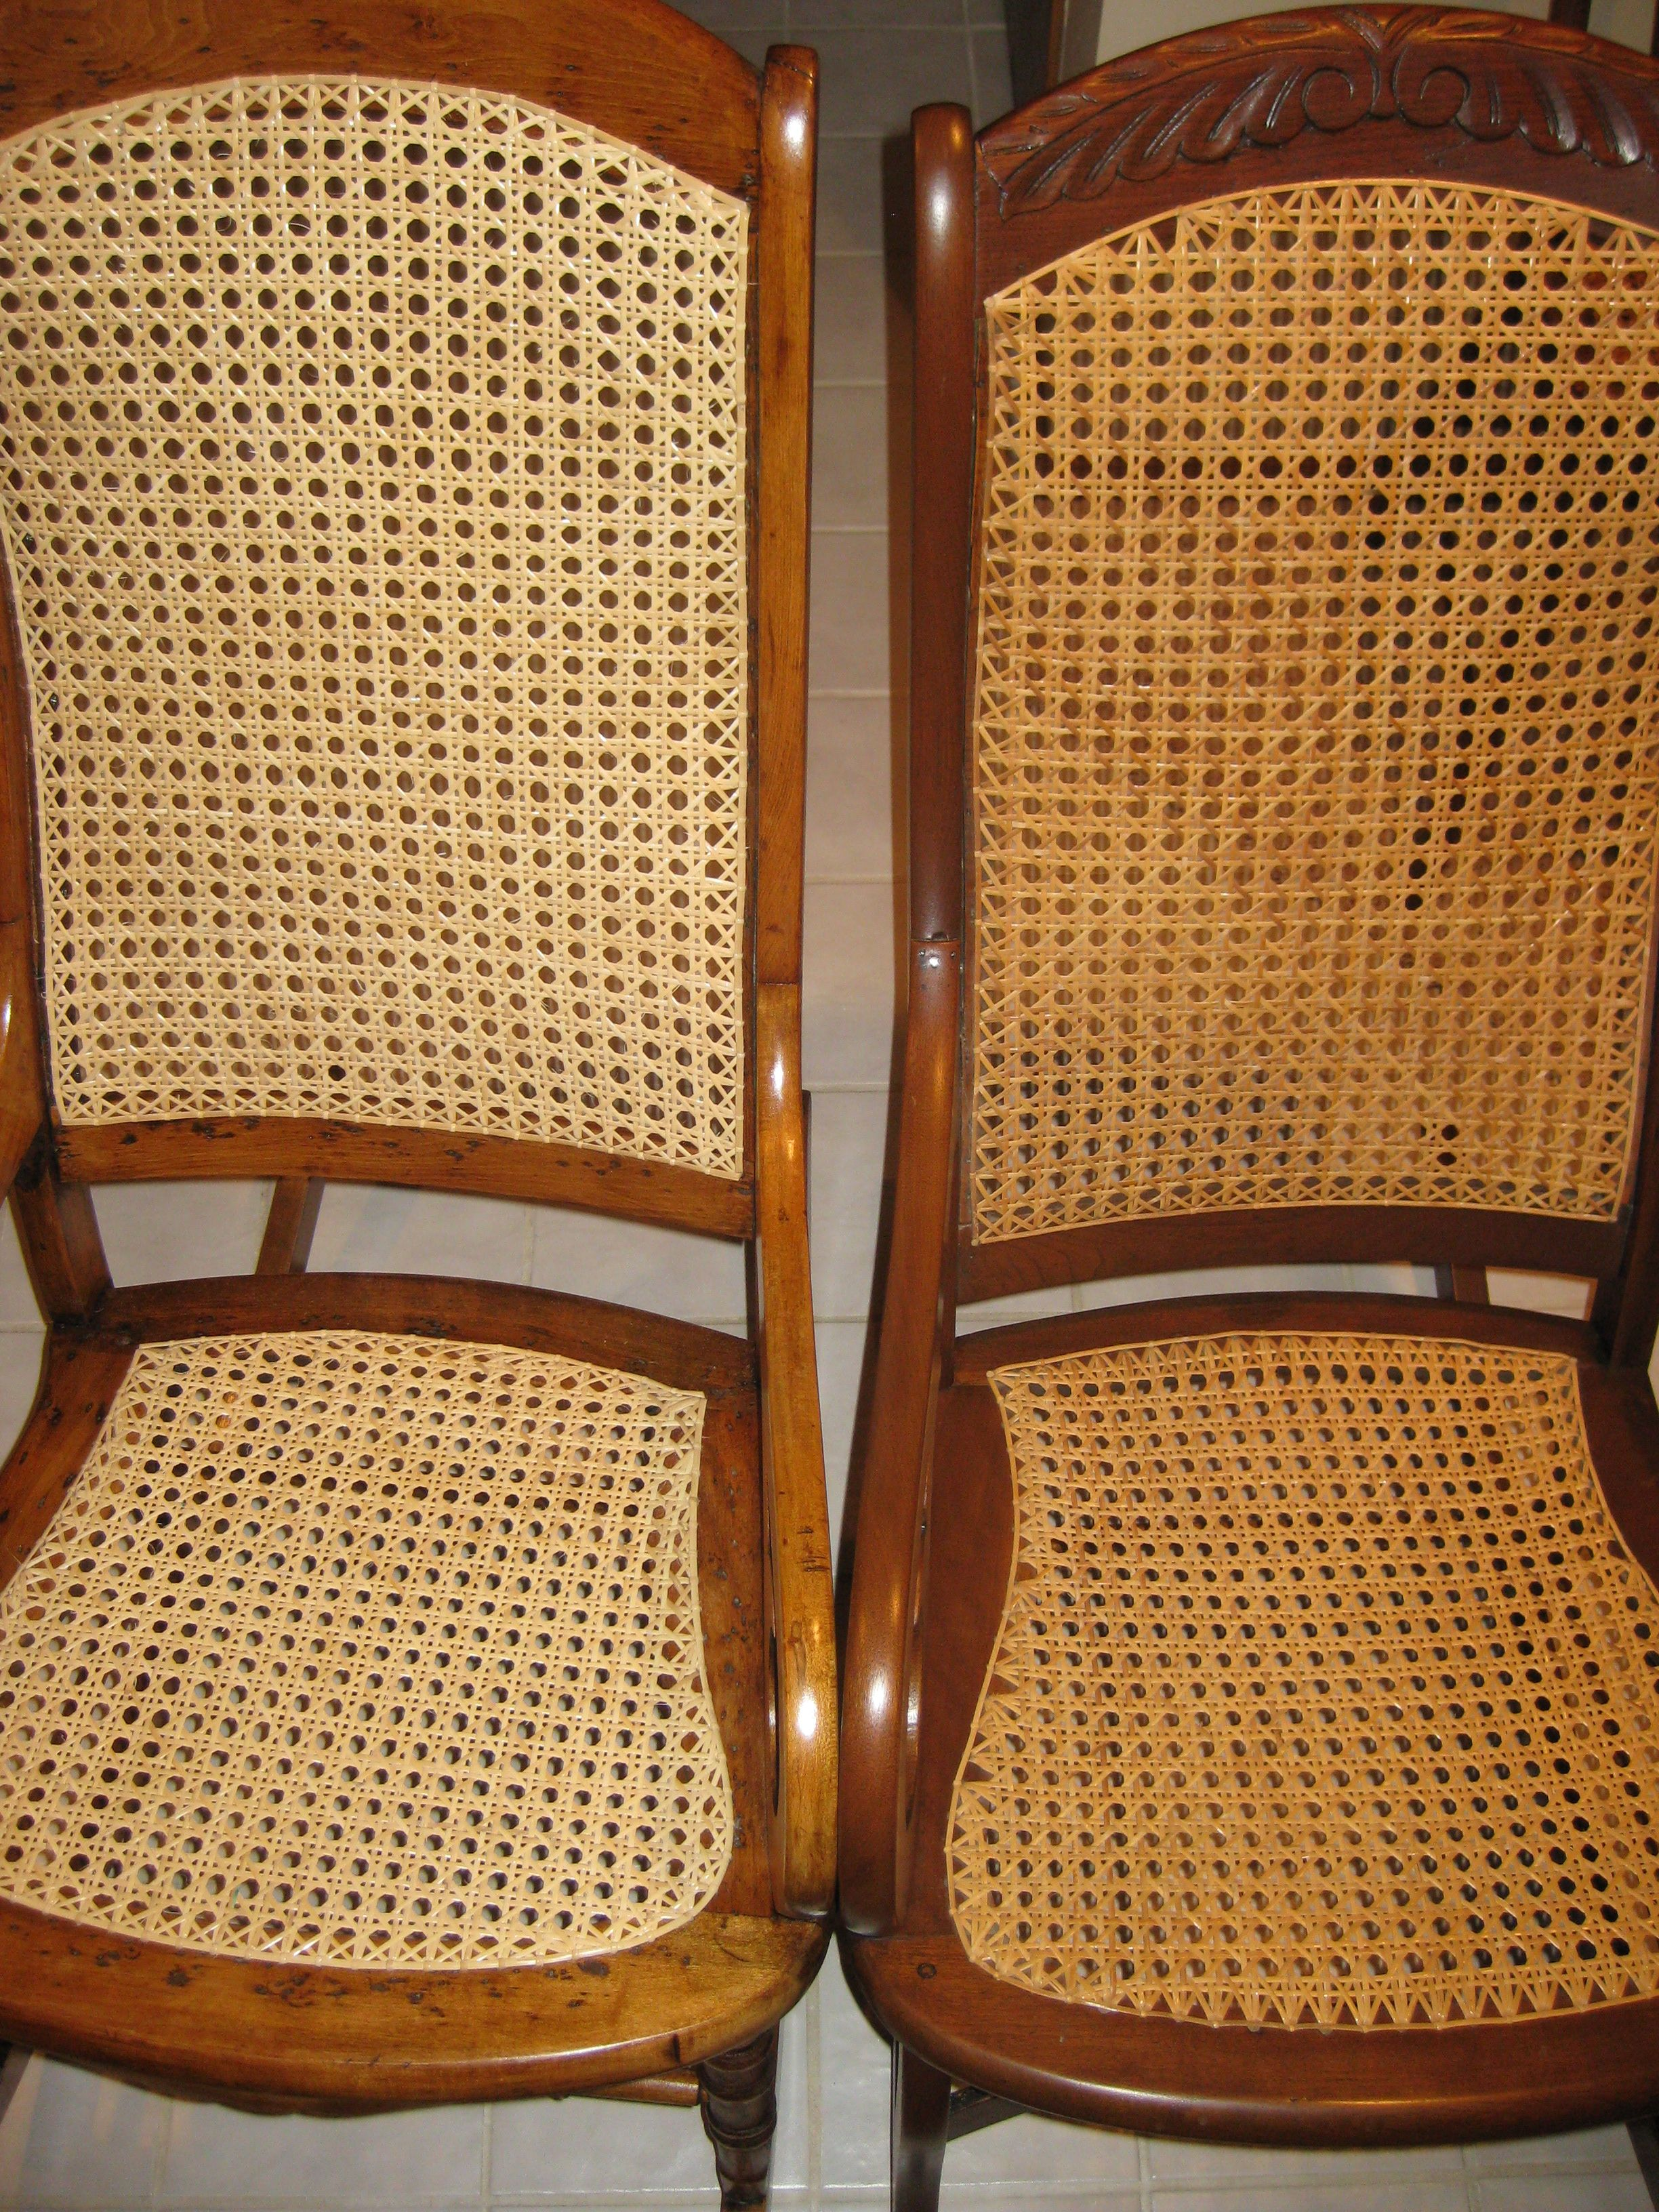 Repair Chair Seat Webbing Emil J Paidar Barber Parts Caning I Have 2 Chairs That Need The Re Caned